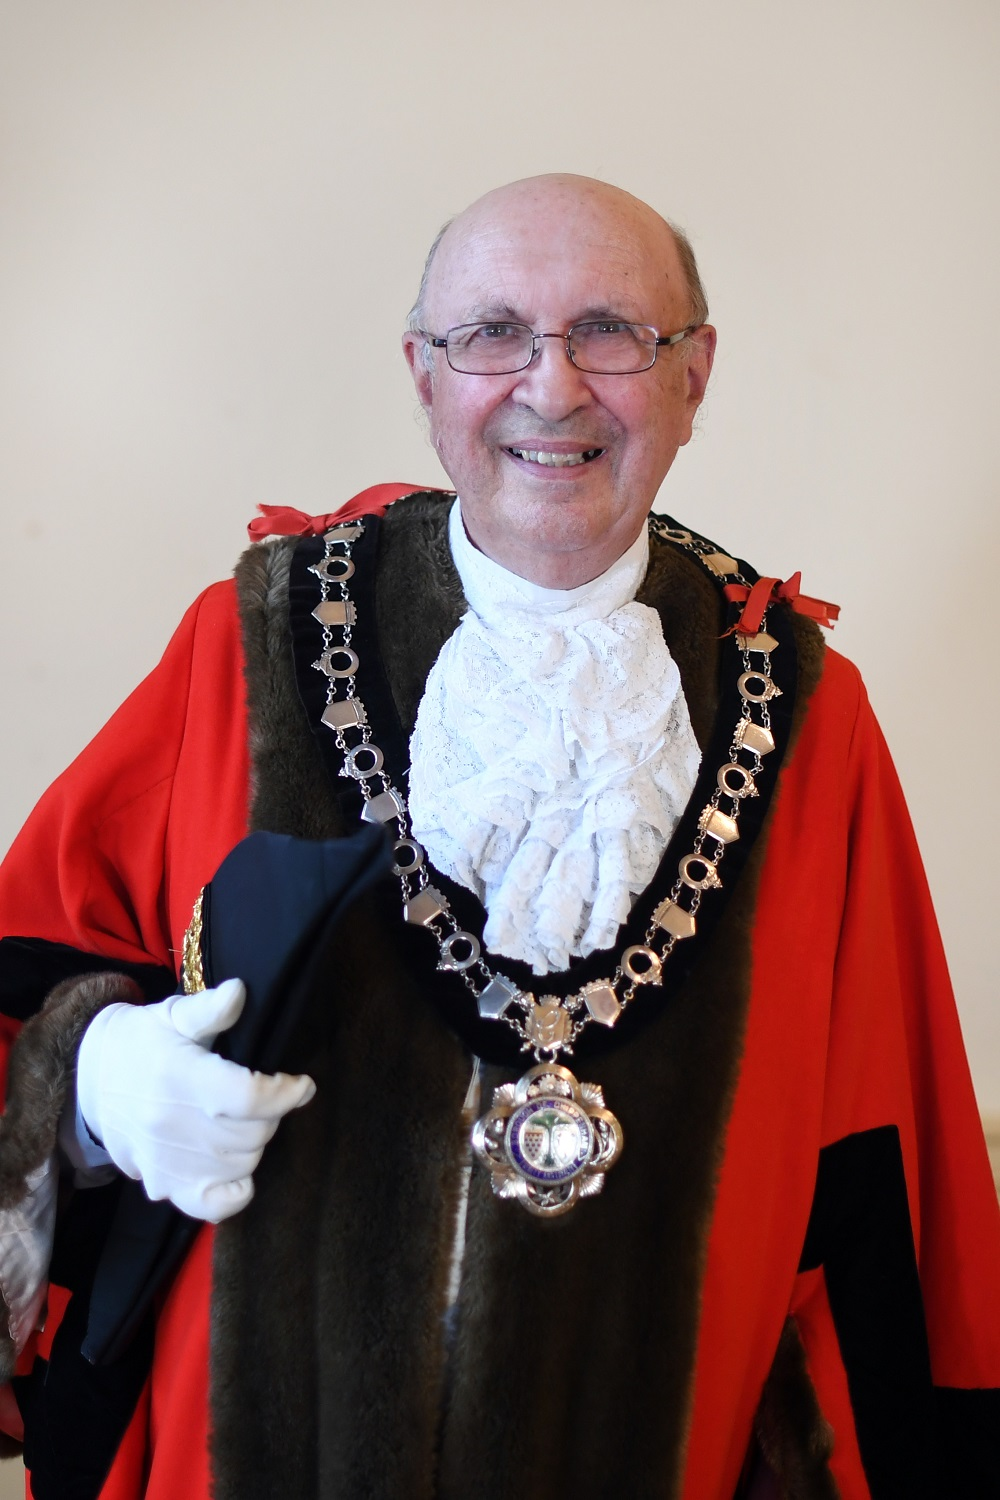 Mayor of Chippenham 2021/22 Councillor John Scragg in his official mayoral robe and chain